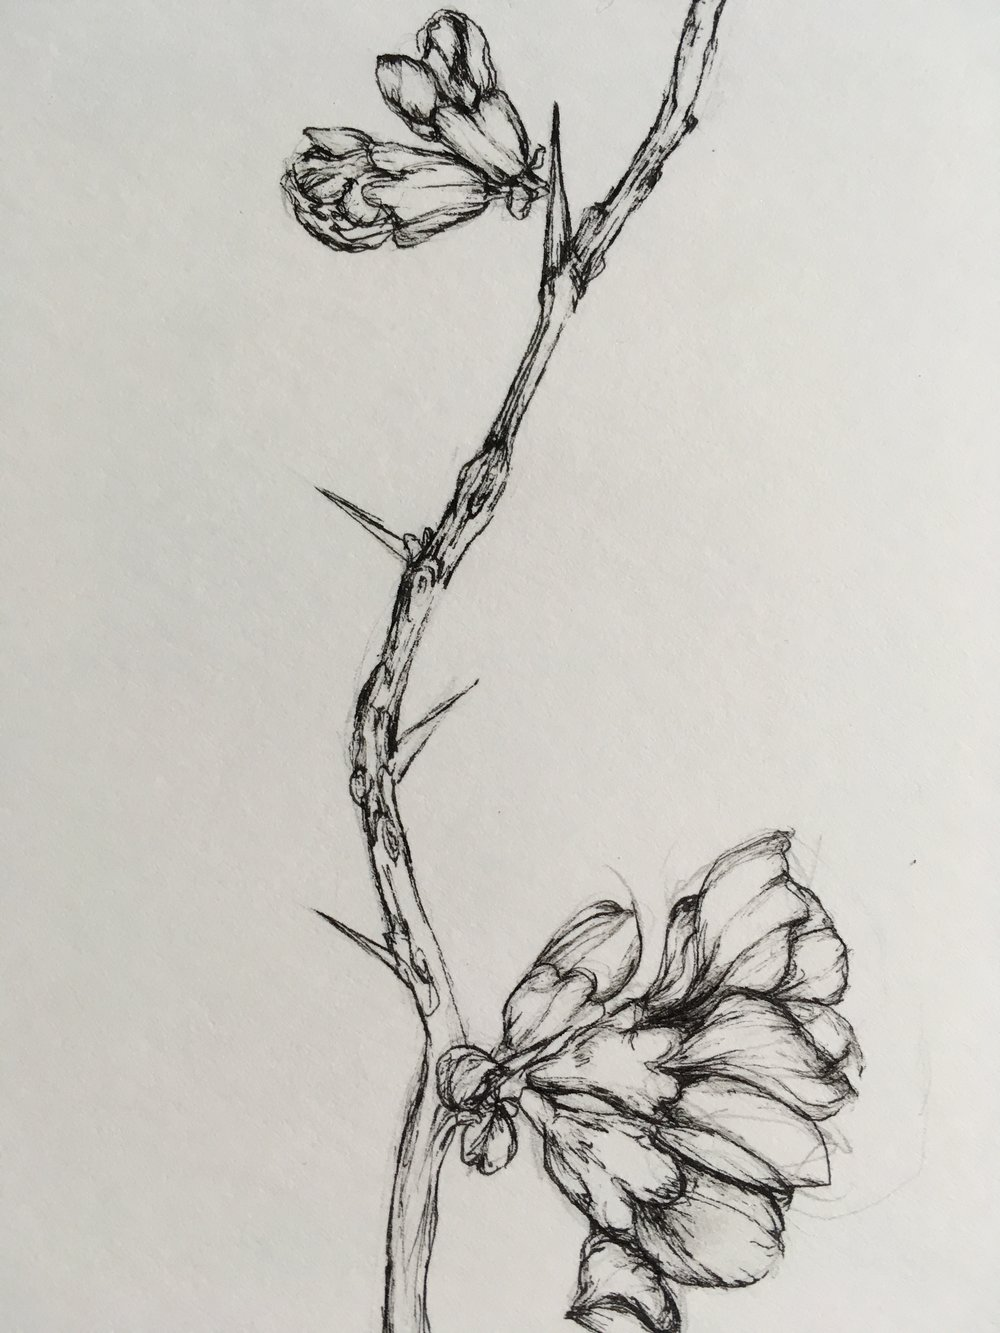 Siena's botanical art